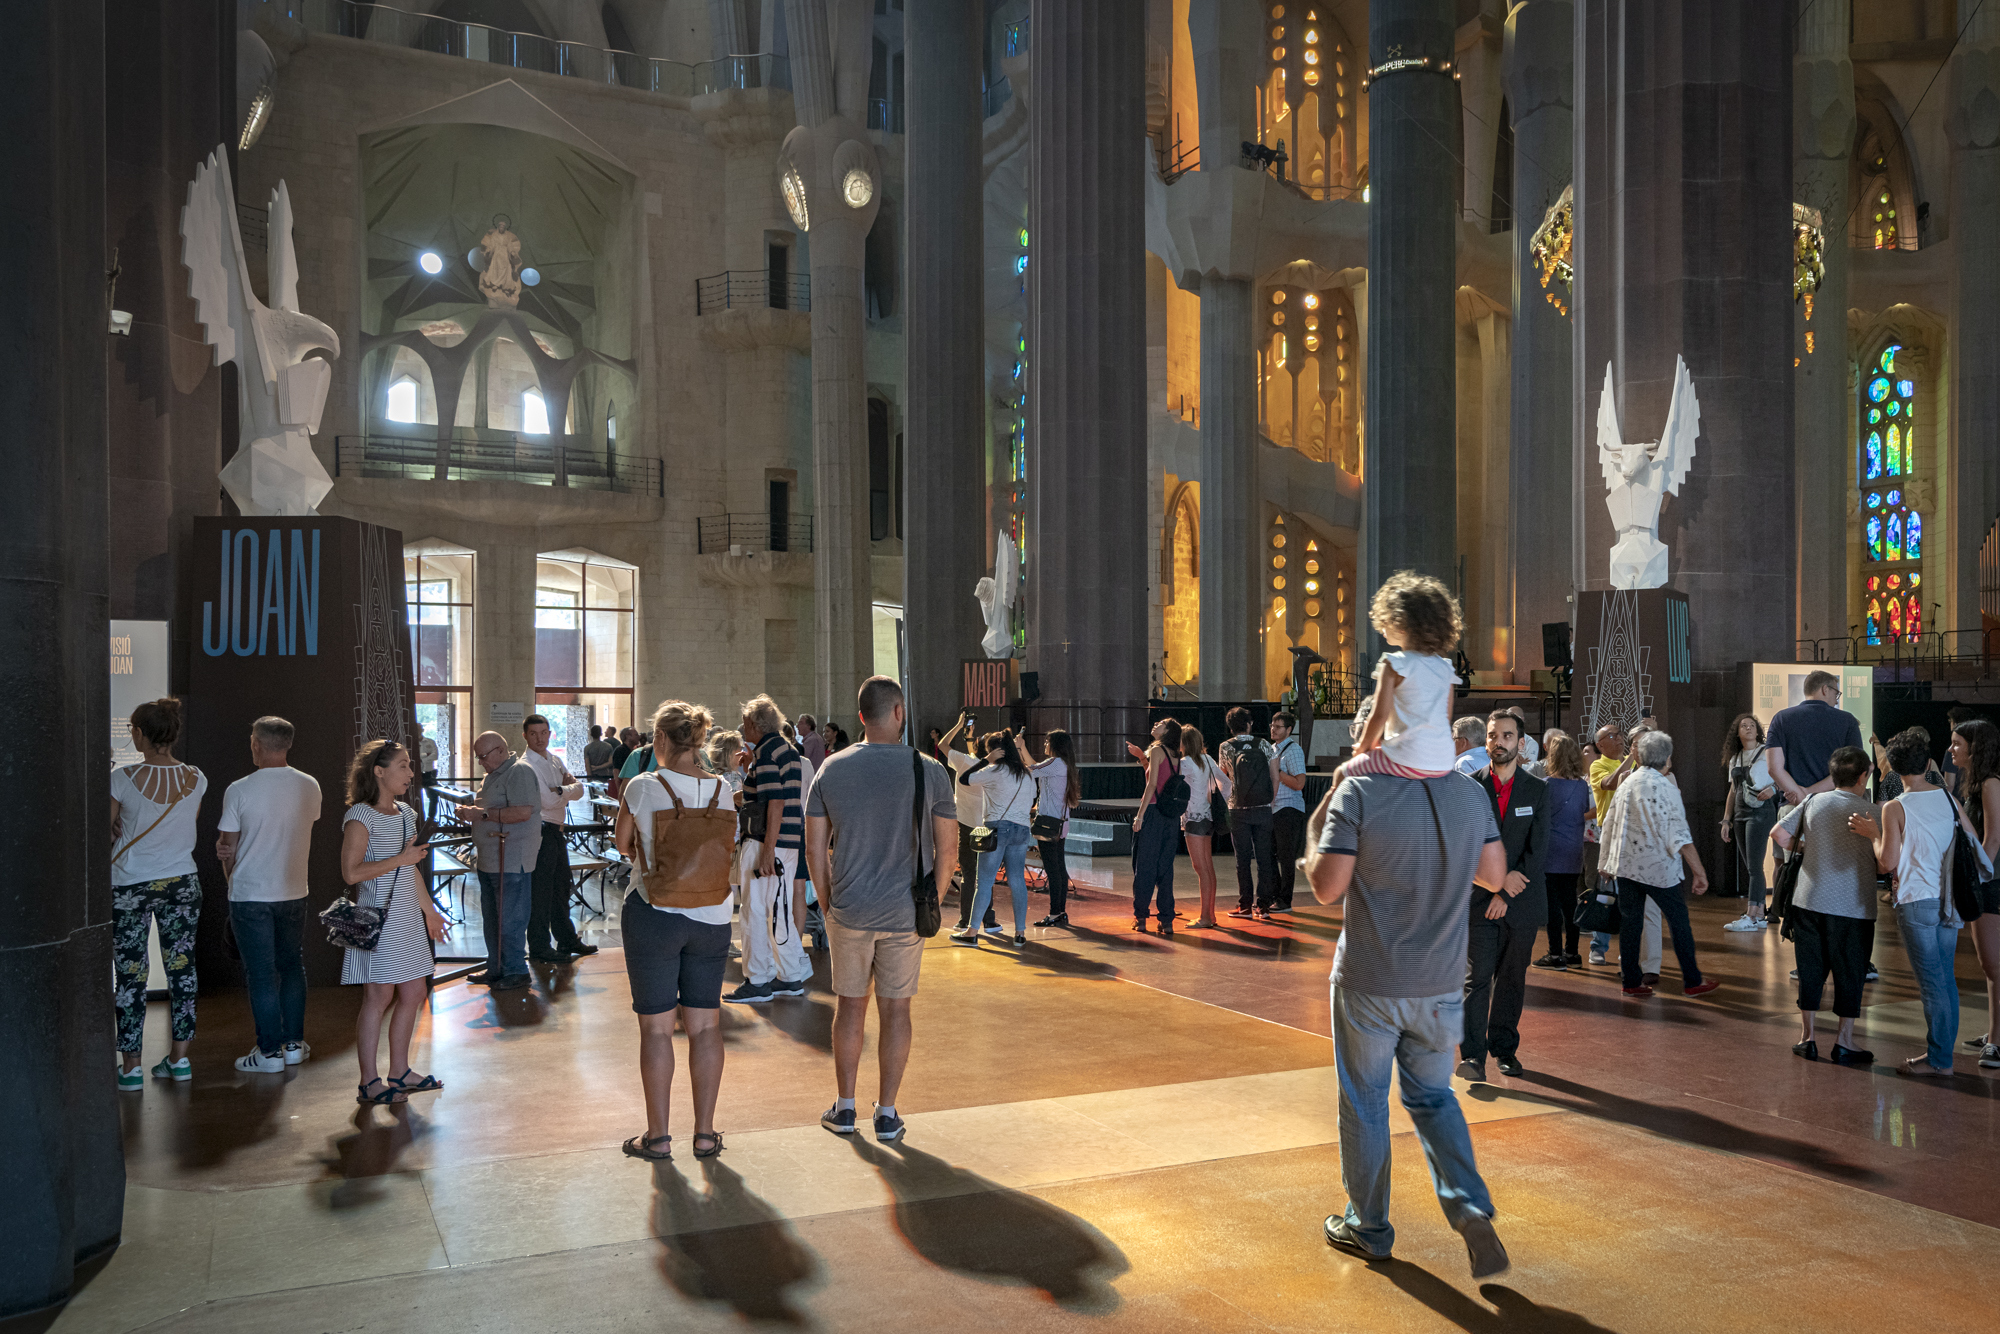 The Sagrada Família has held its Open Doors Days